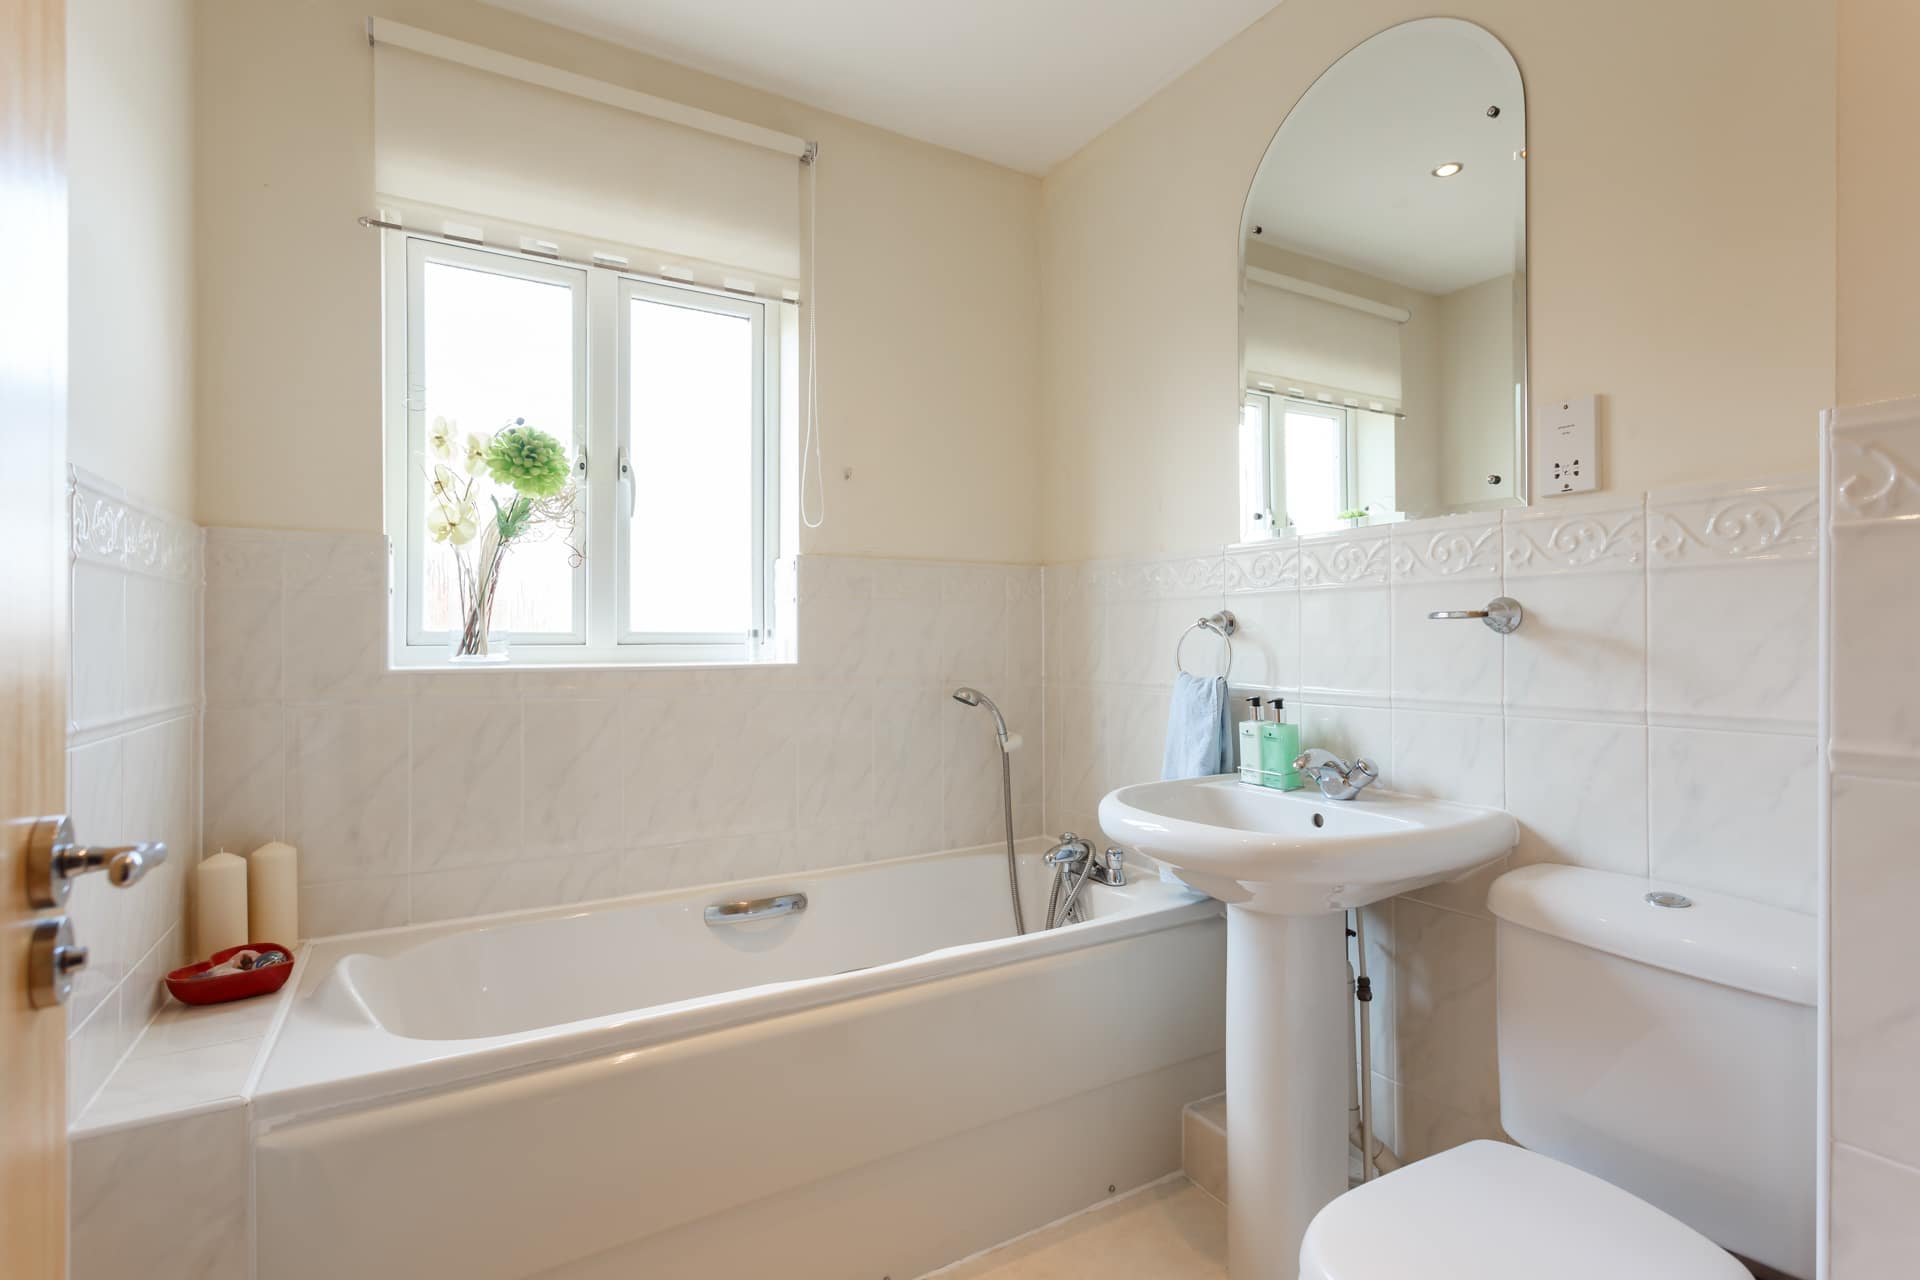 Spacious family bathroom on first floor